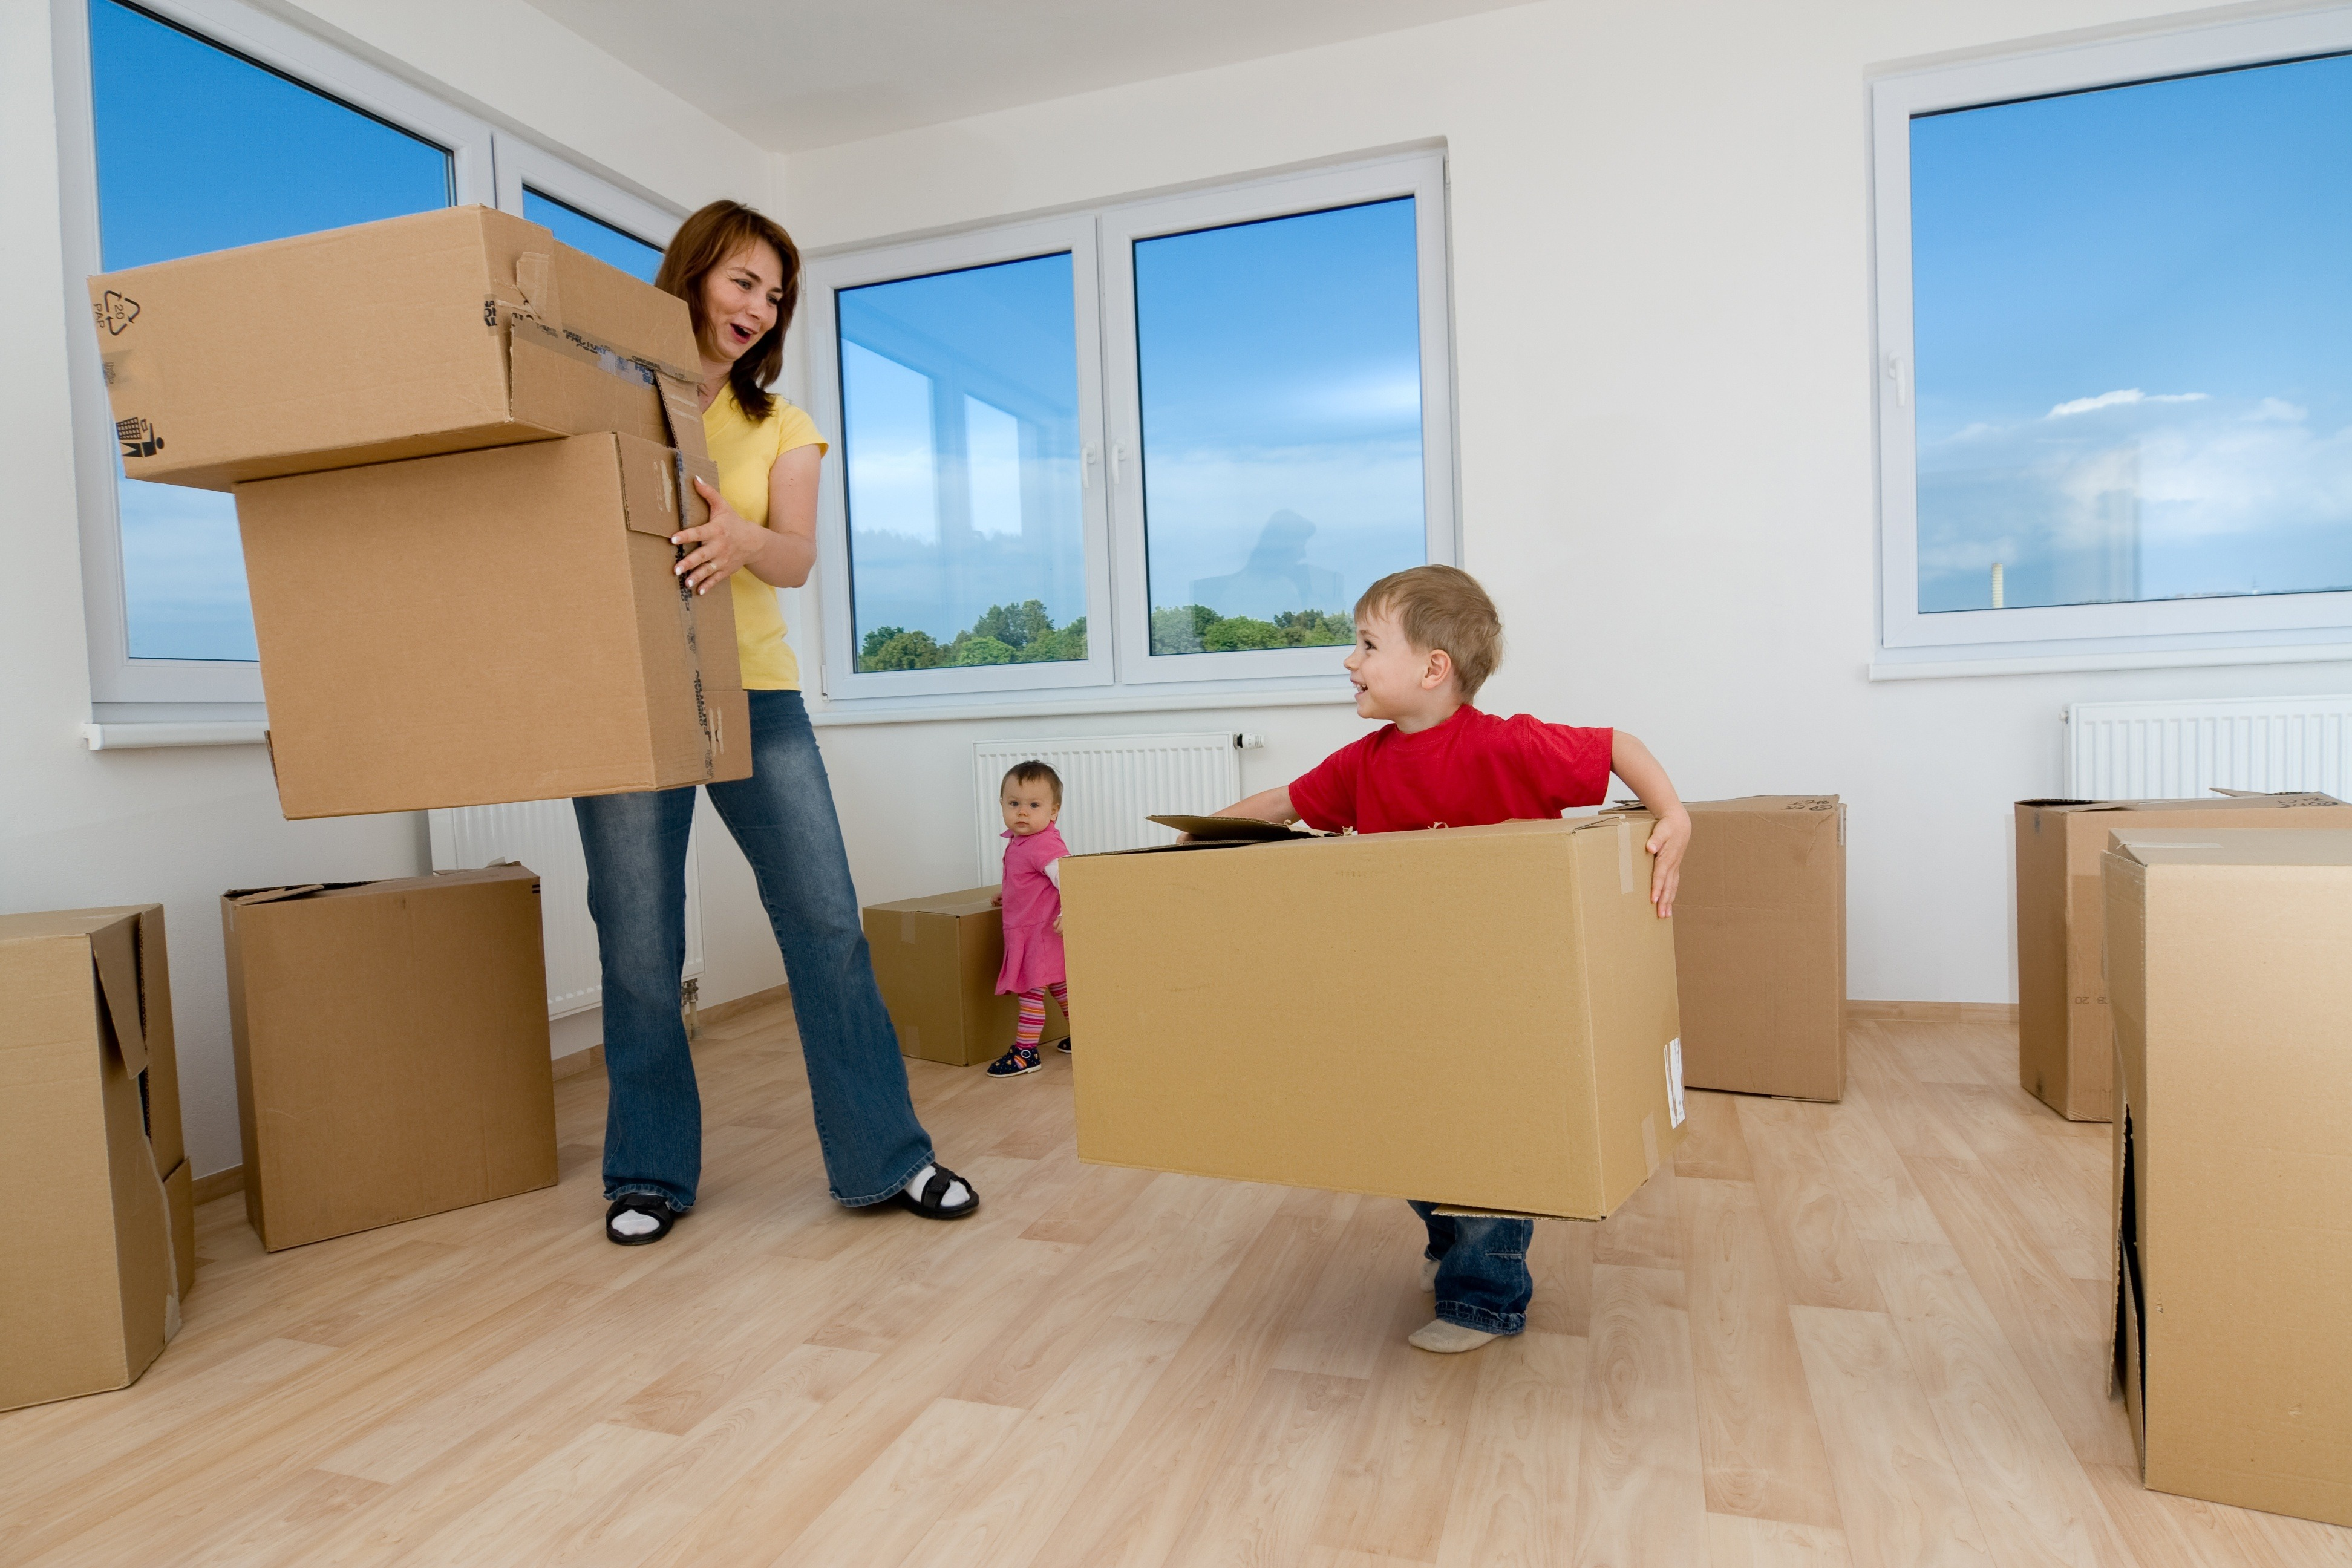 Top 5 tips to choose a self storage facility amberley for Moving into a new build house tips